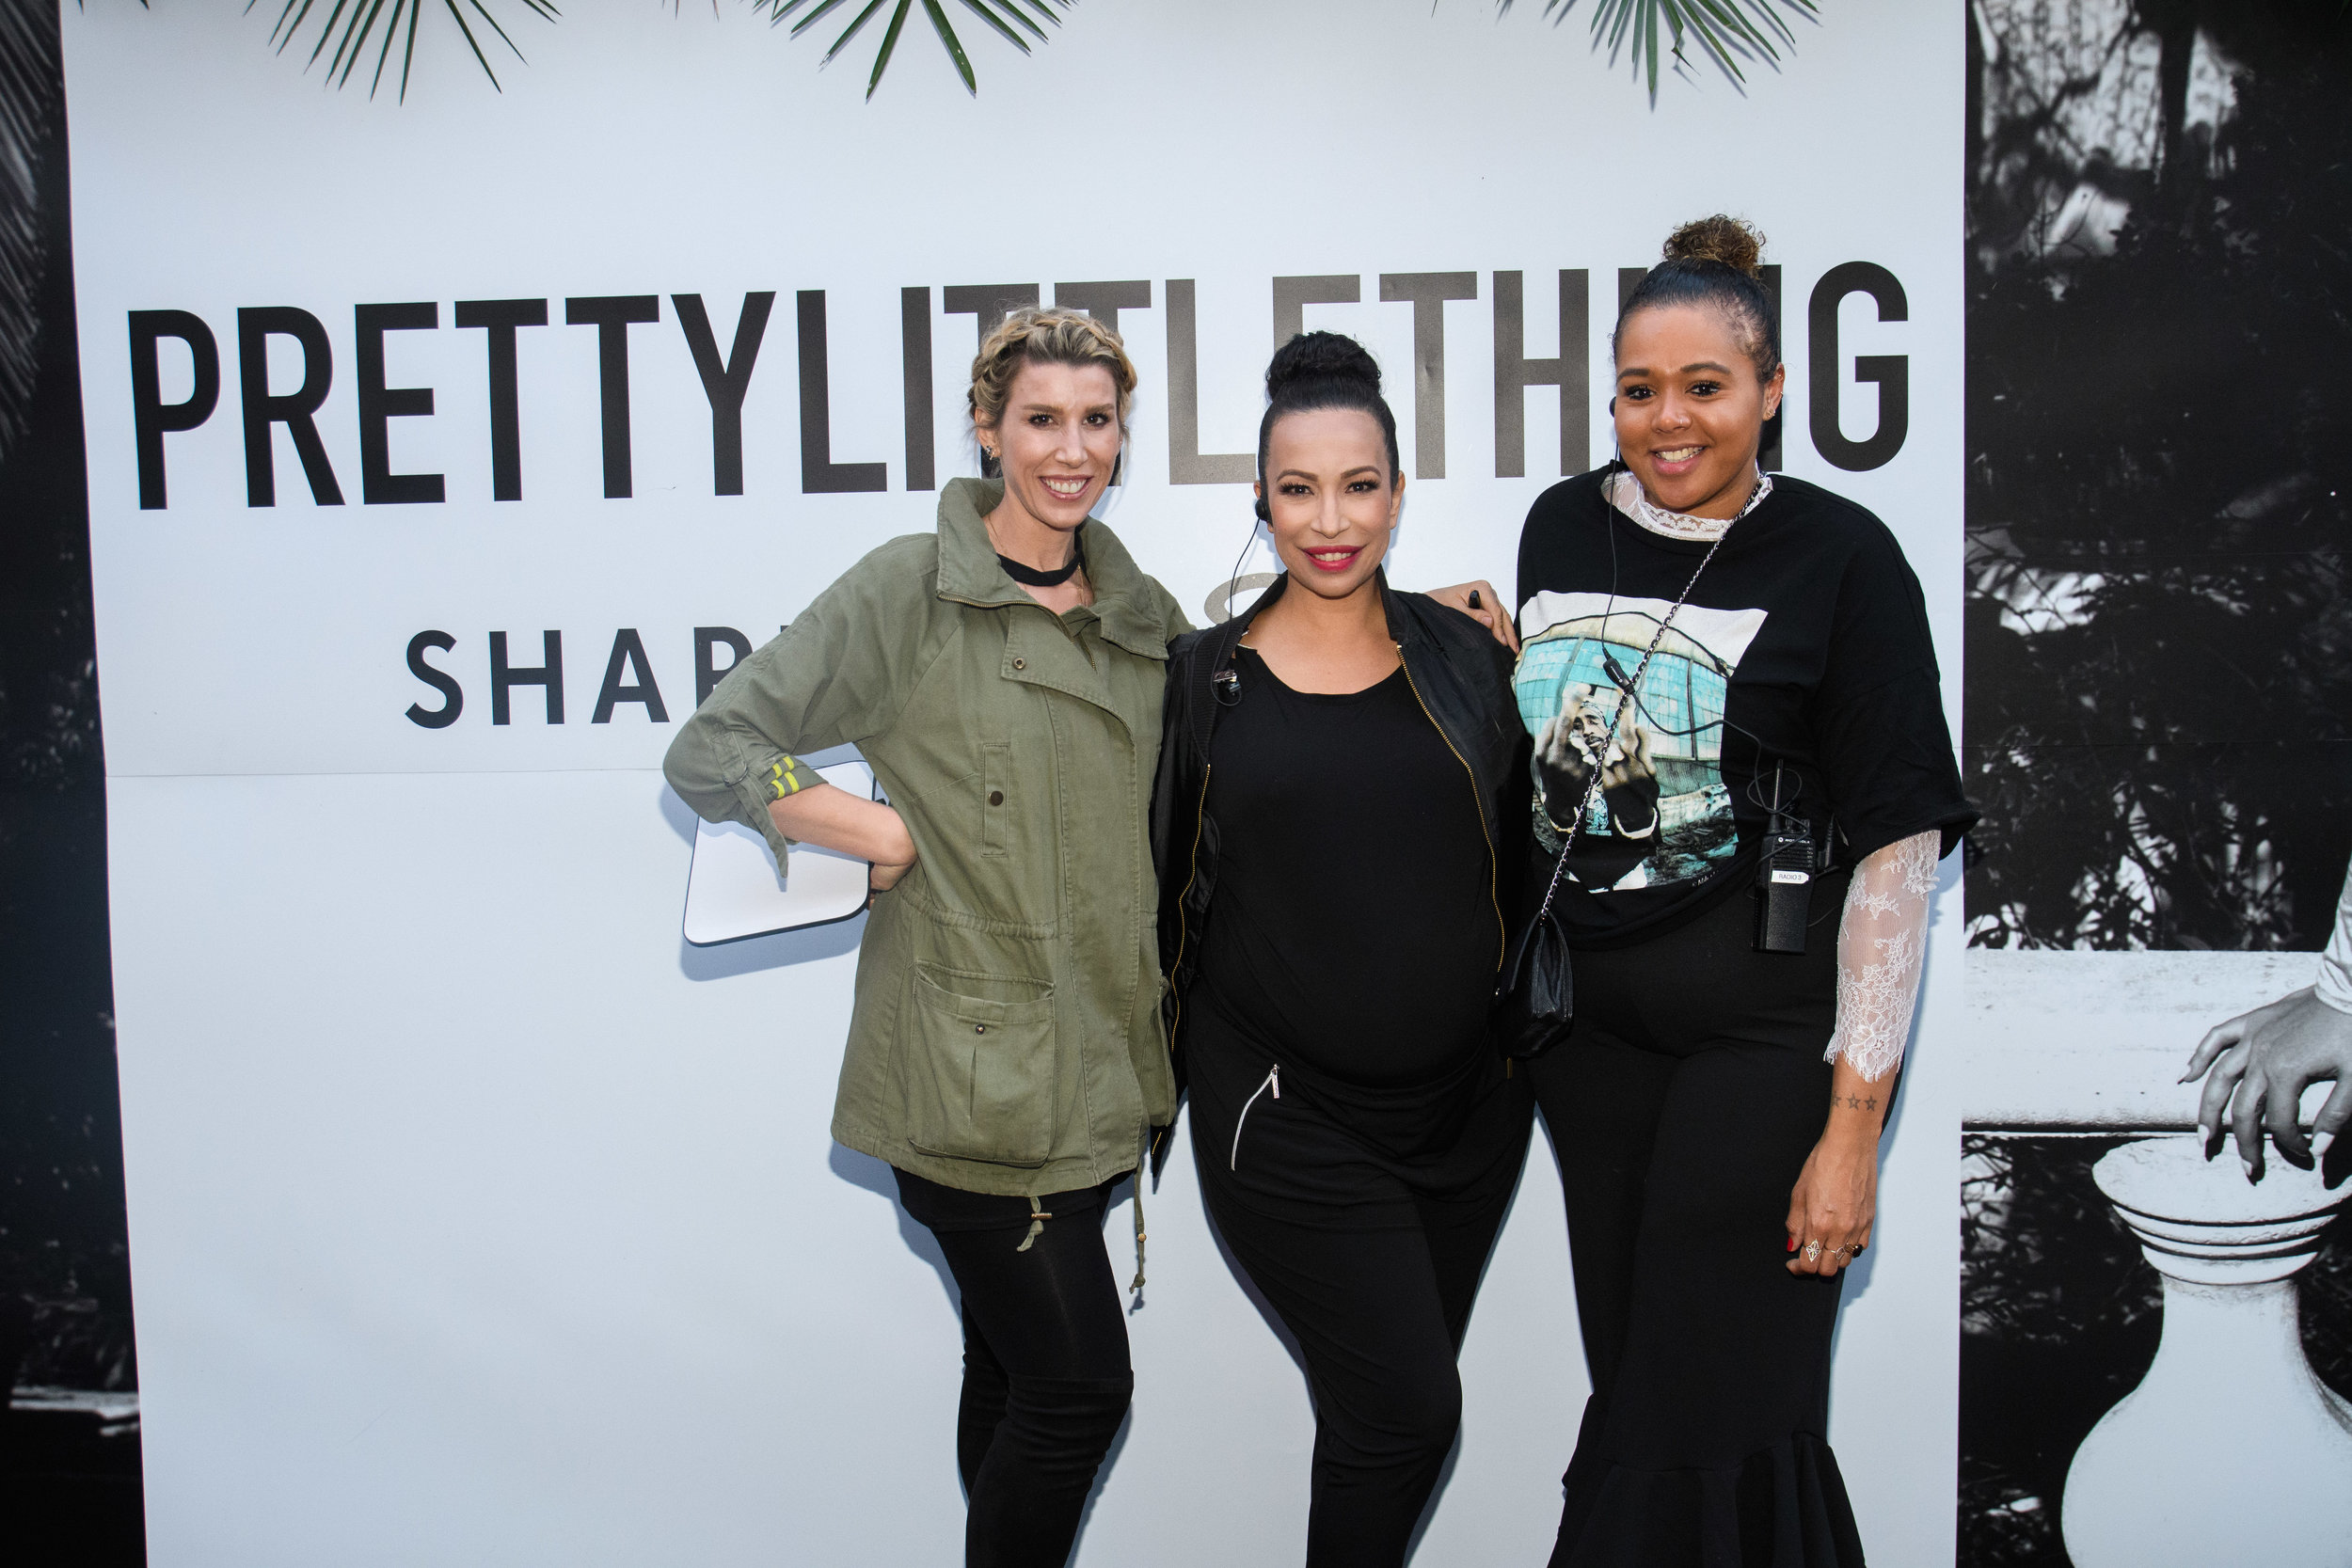 PrettyLittleThing New PLT Shape Collection with Stassie Celebrity Launch Party WOTP team.jpg